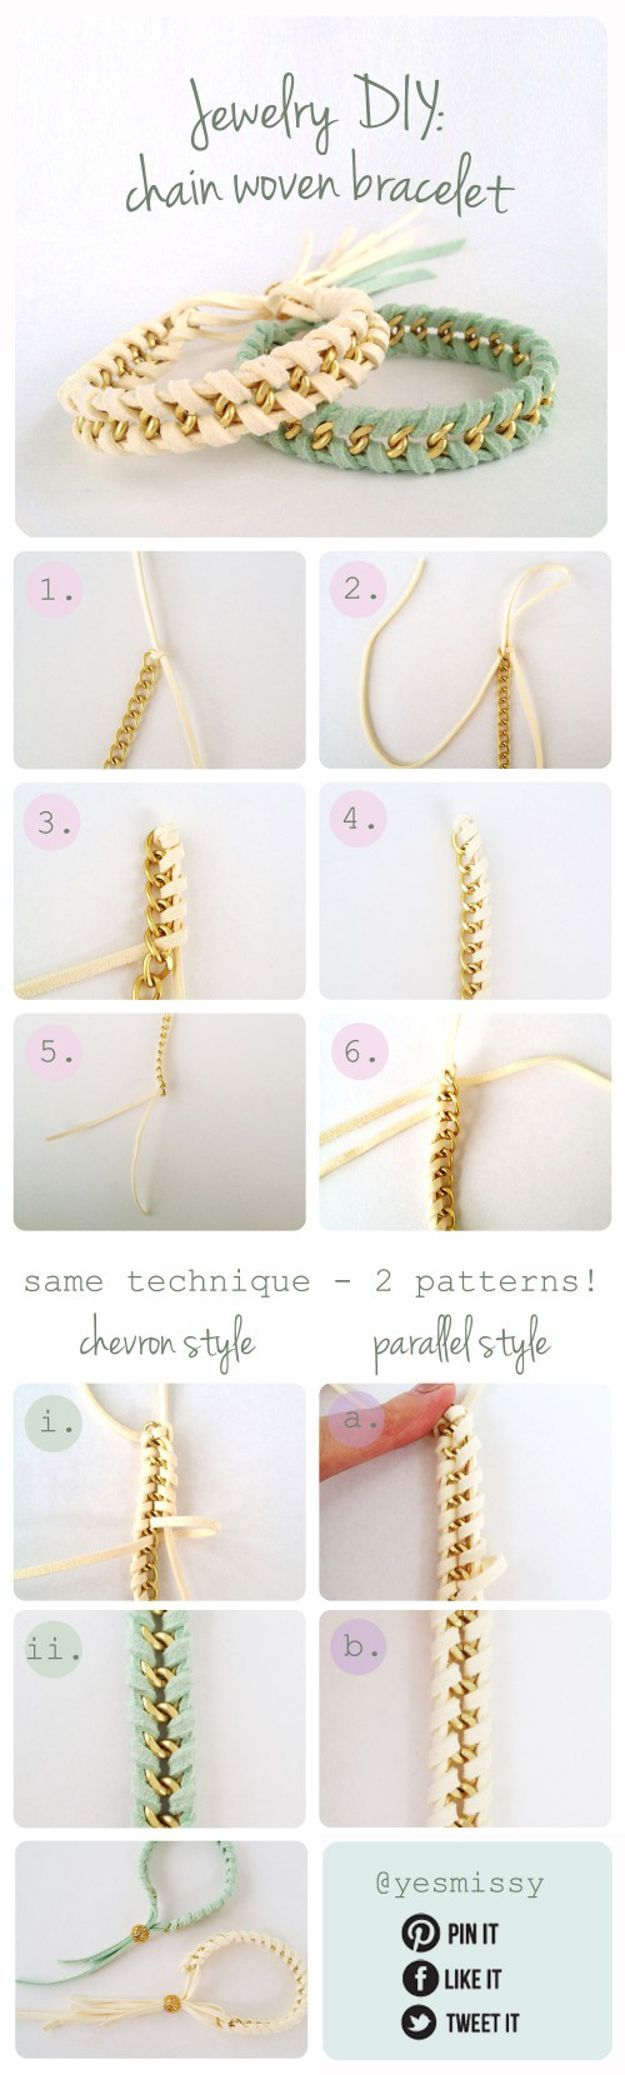 Cool DIY Bracelets - Easy Jewelry Making Tutorials! How To Make A Braided Chain Bracelet http://diyready.com/diy-braided-bracelets-homemade-jewelry-trends/